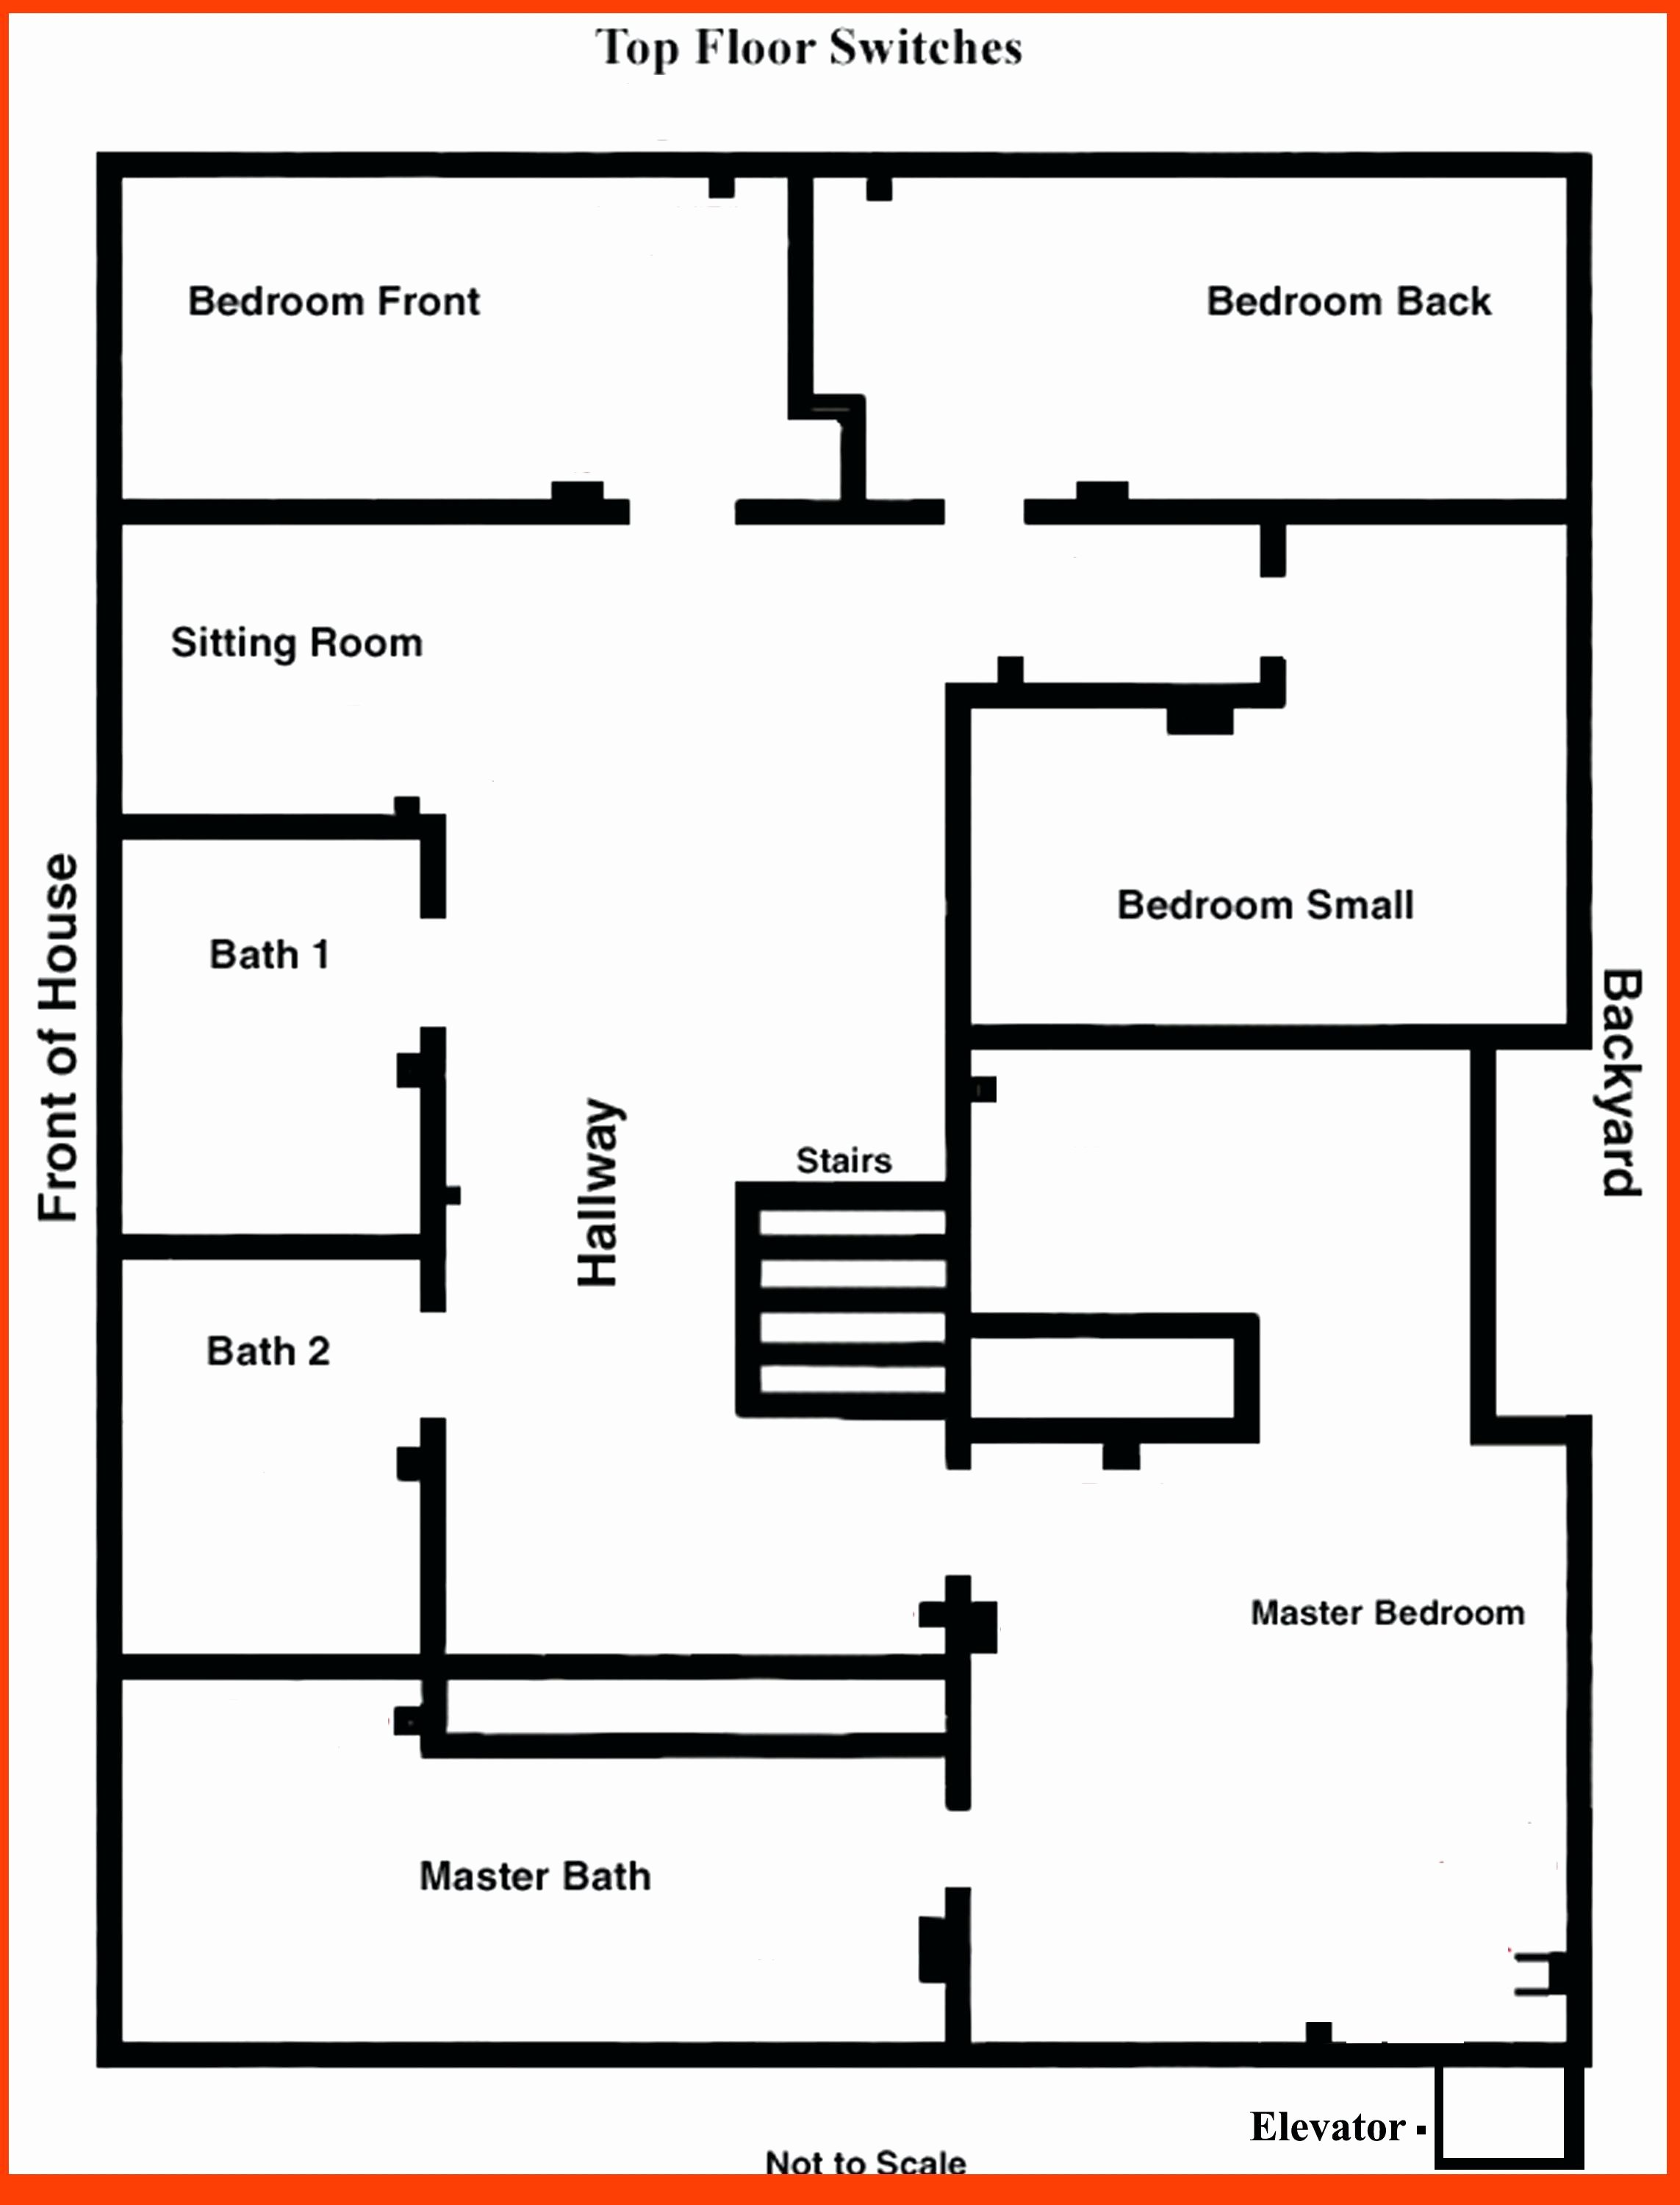 Diagram Bedroom Wiring Diagram for Outlets